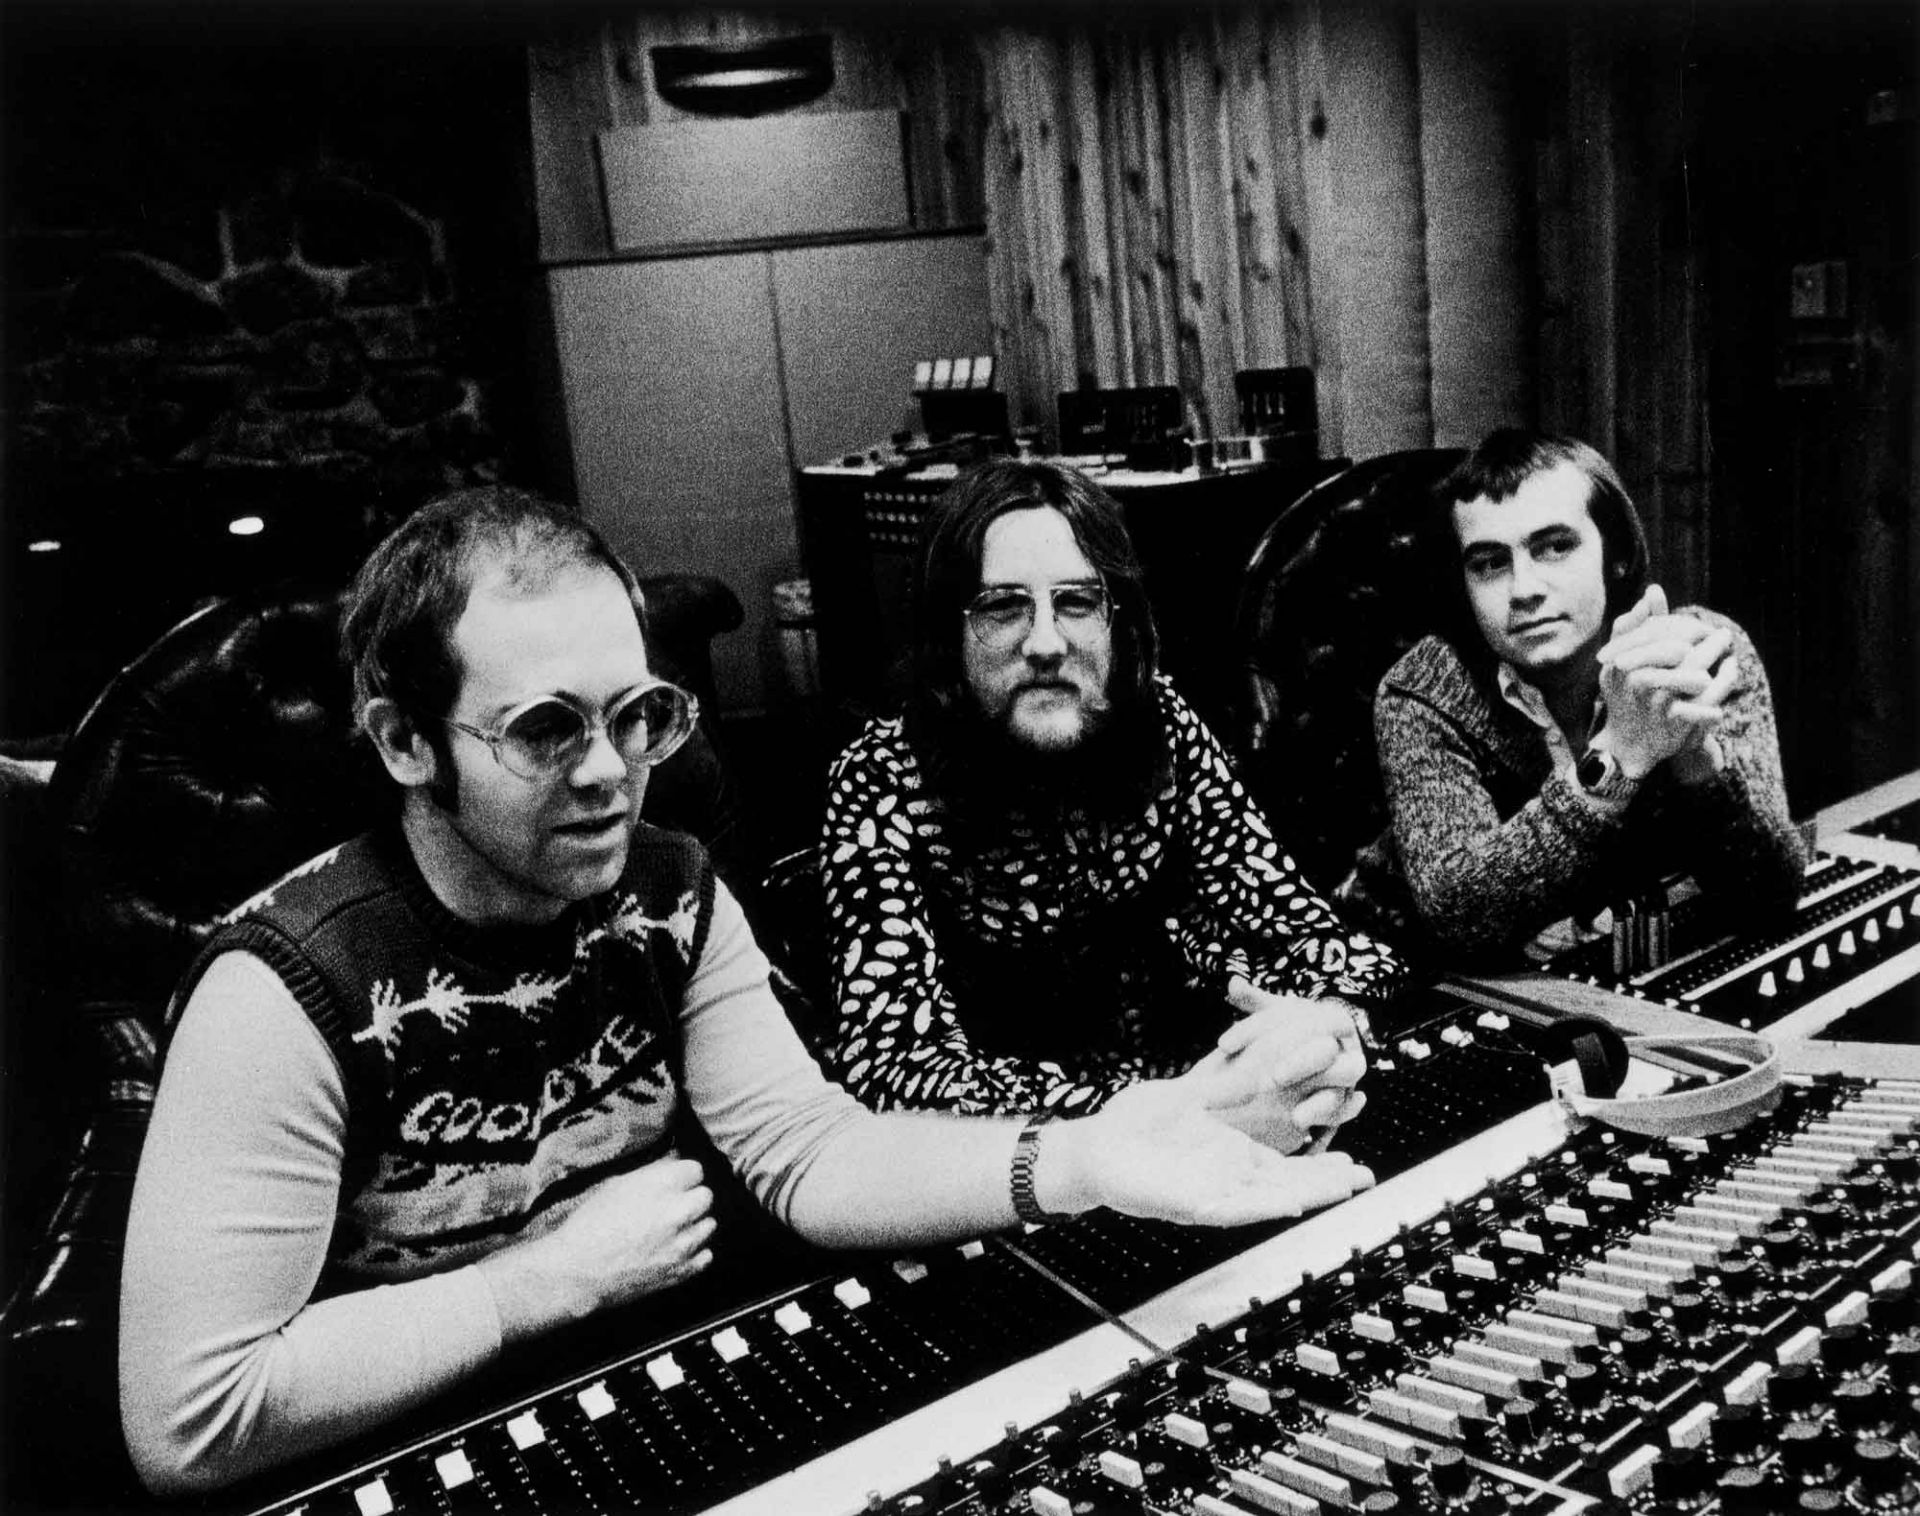 Elton, producer Gus Dudgeon, and Bernie Taupin during the Caribou sessions.